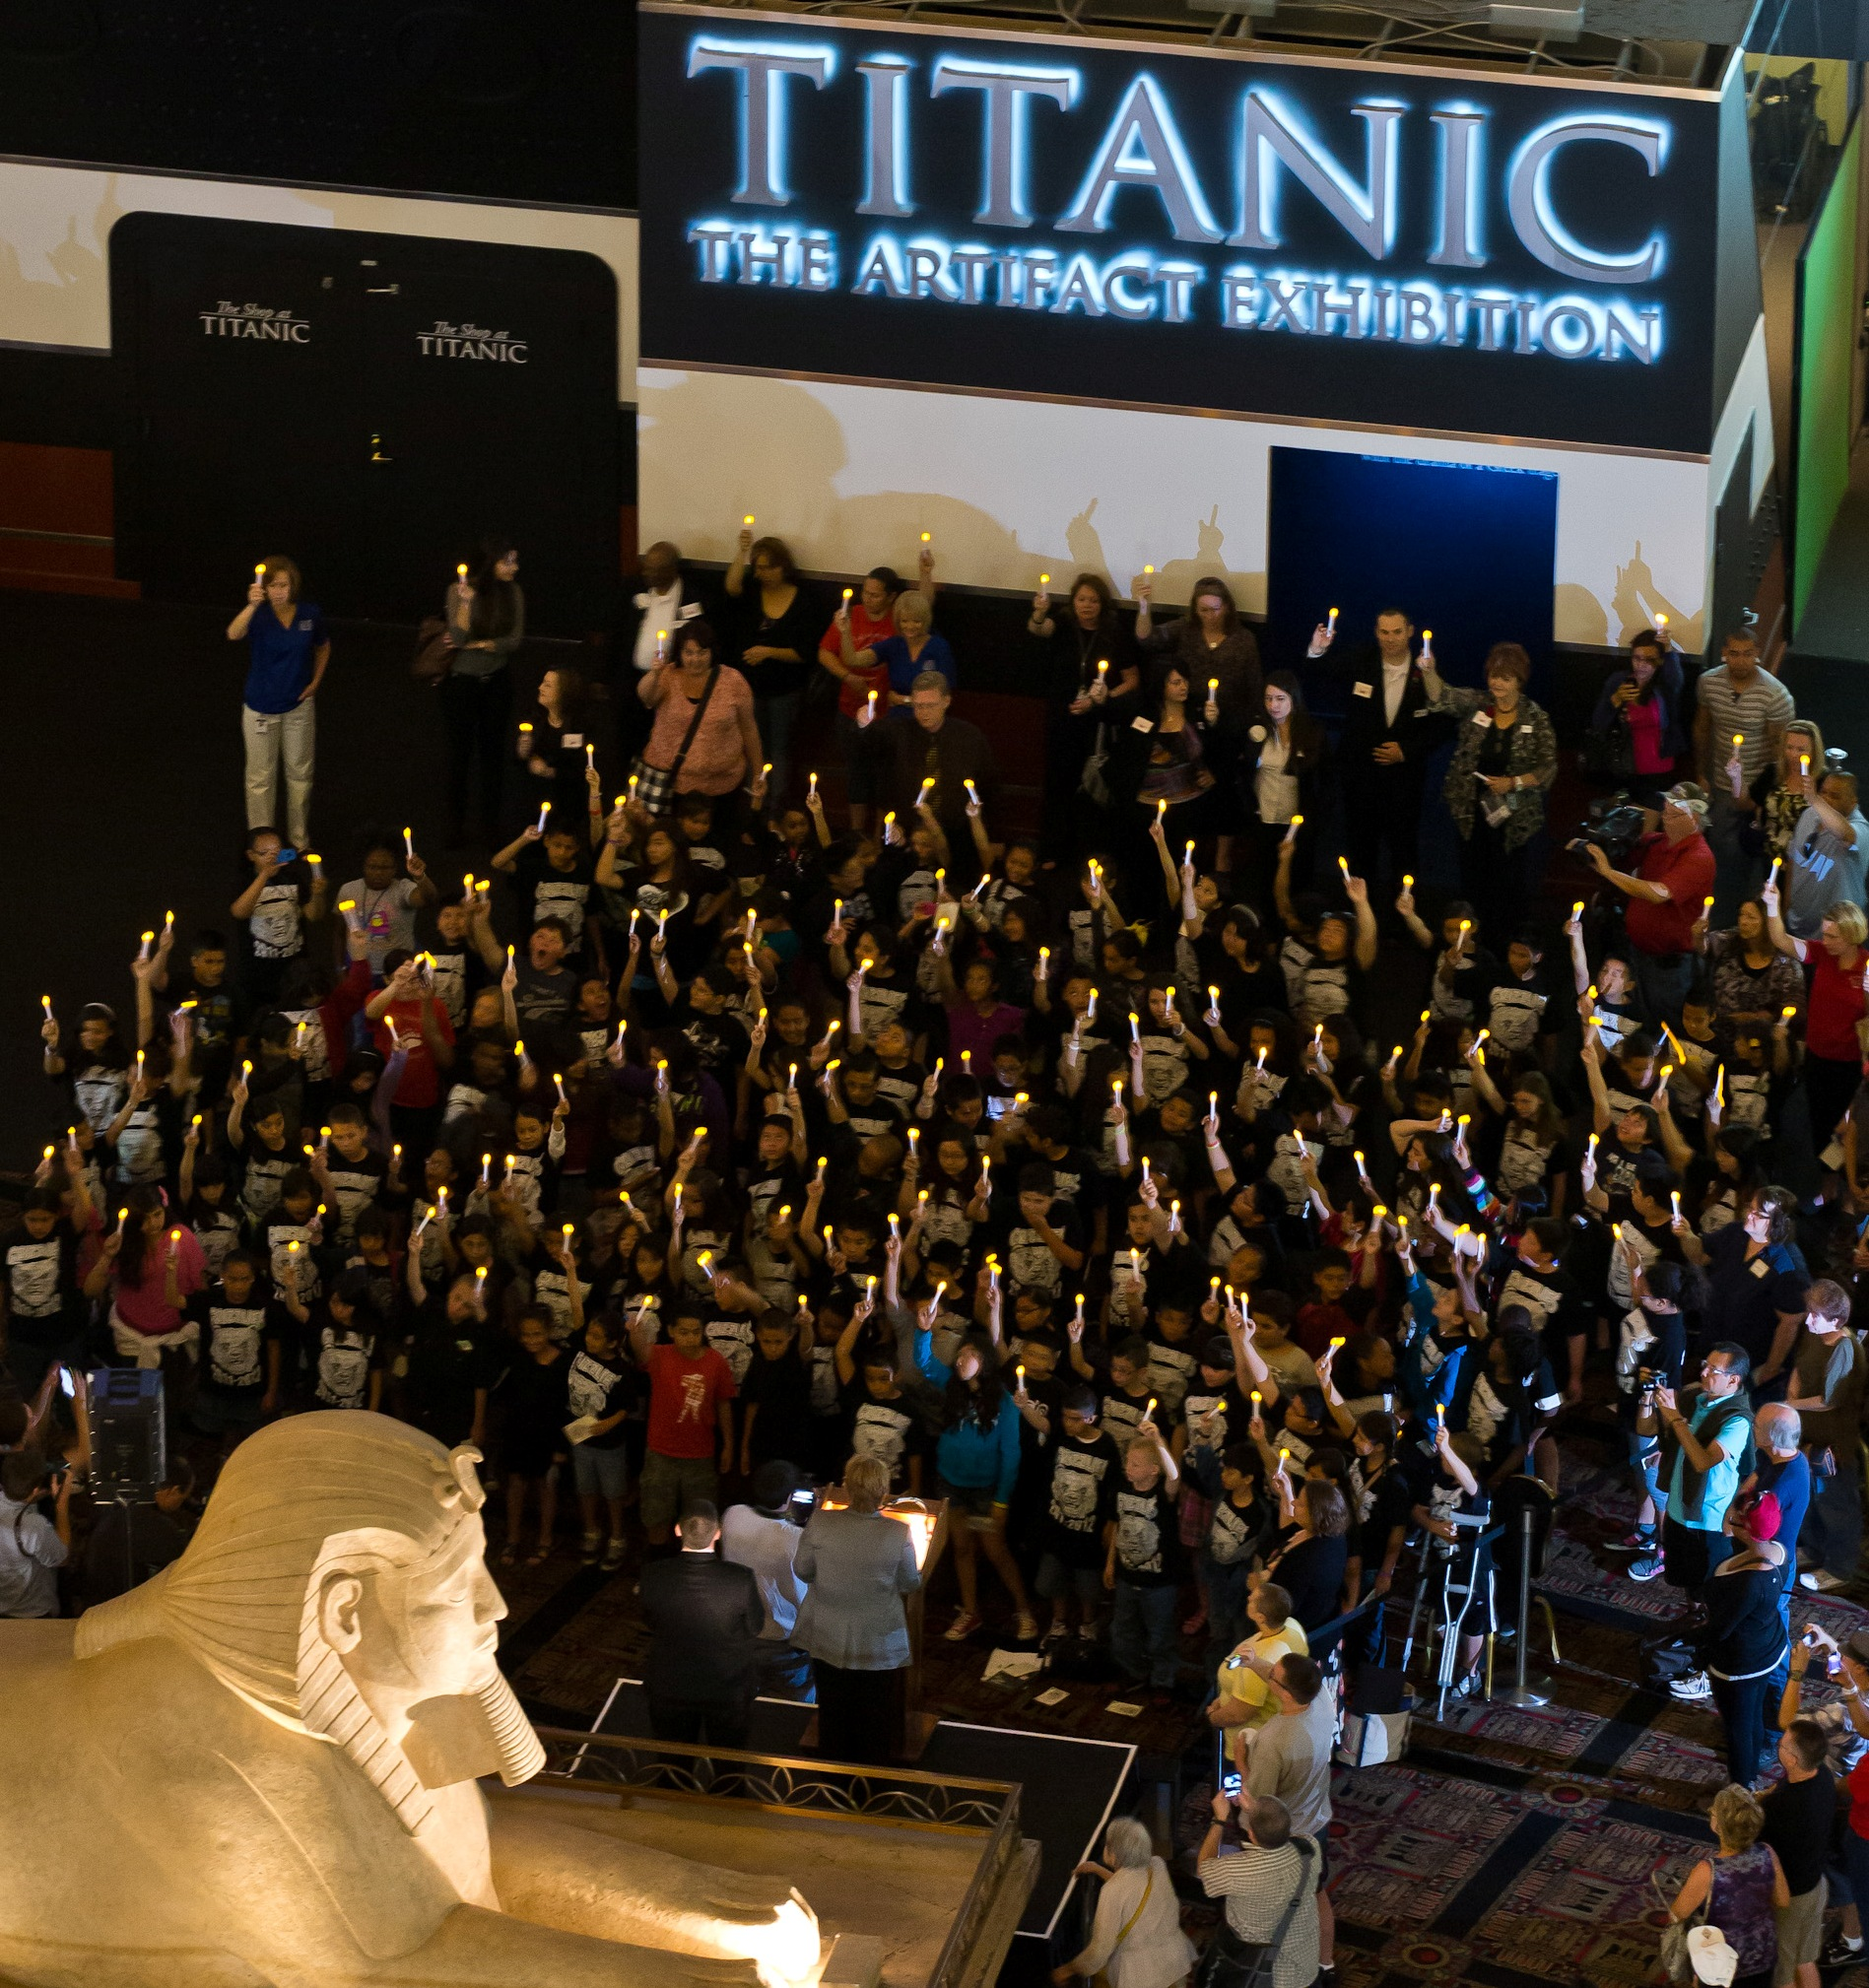 Titanic: The Artifact Exhibition commemorates the Centennial of RMS Titanic